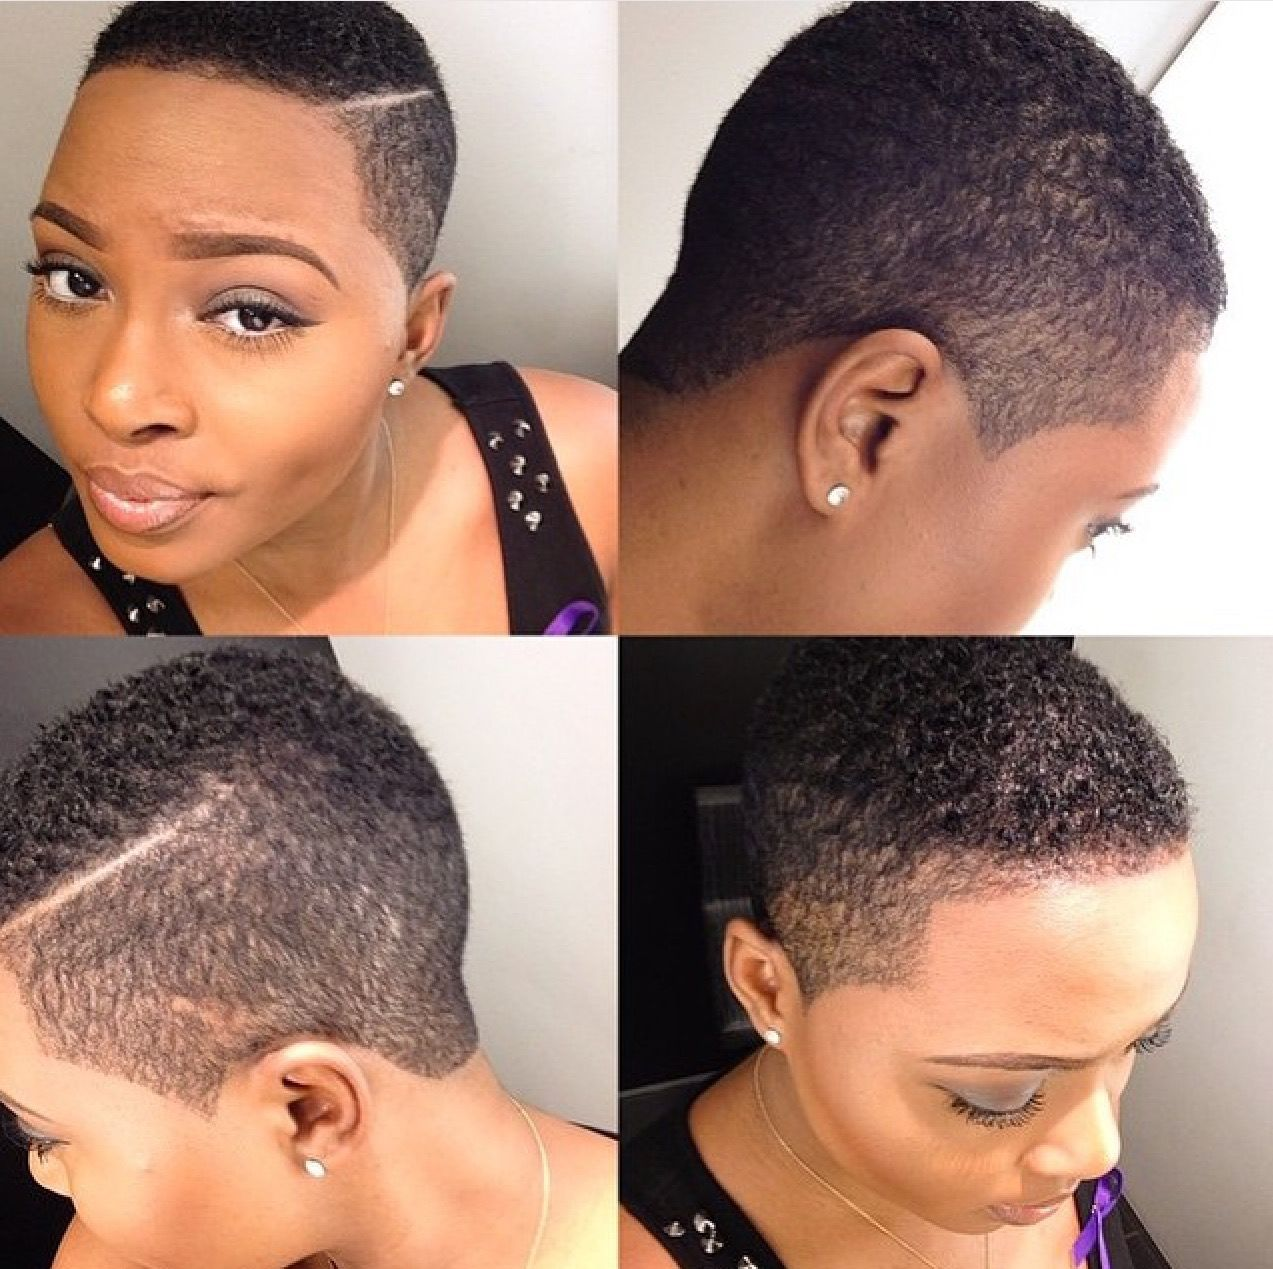 26 short haircut designs your barber needs to see | haircut